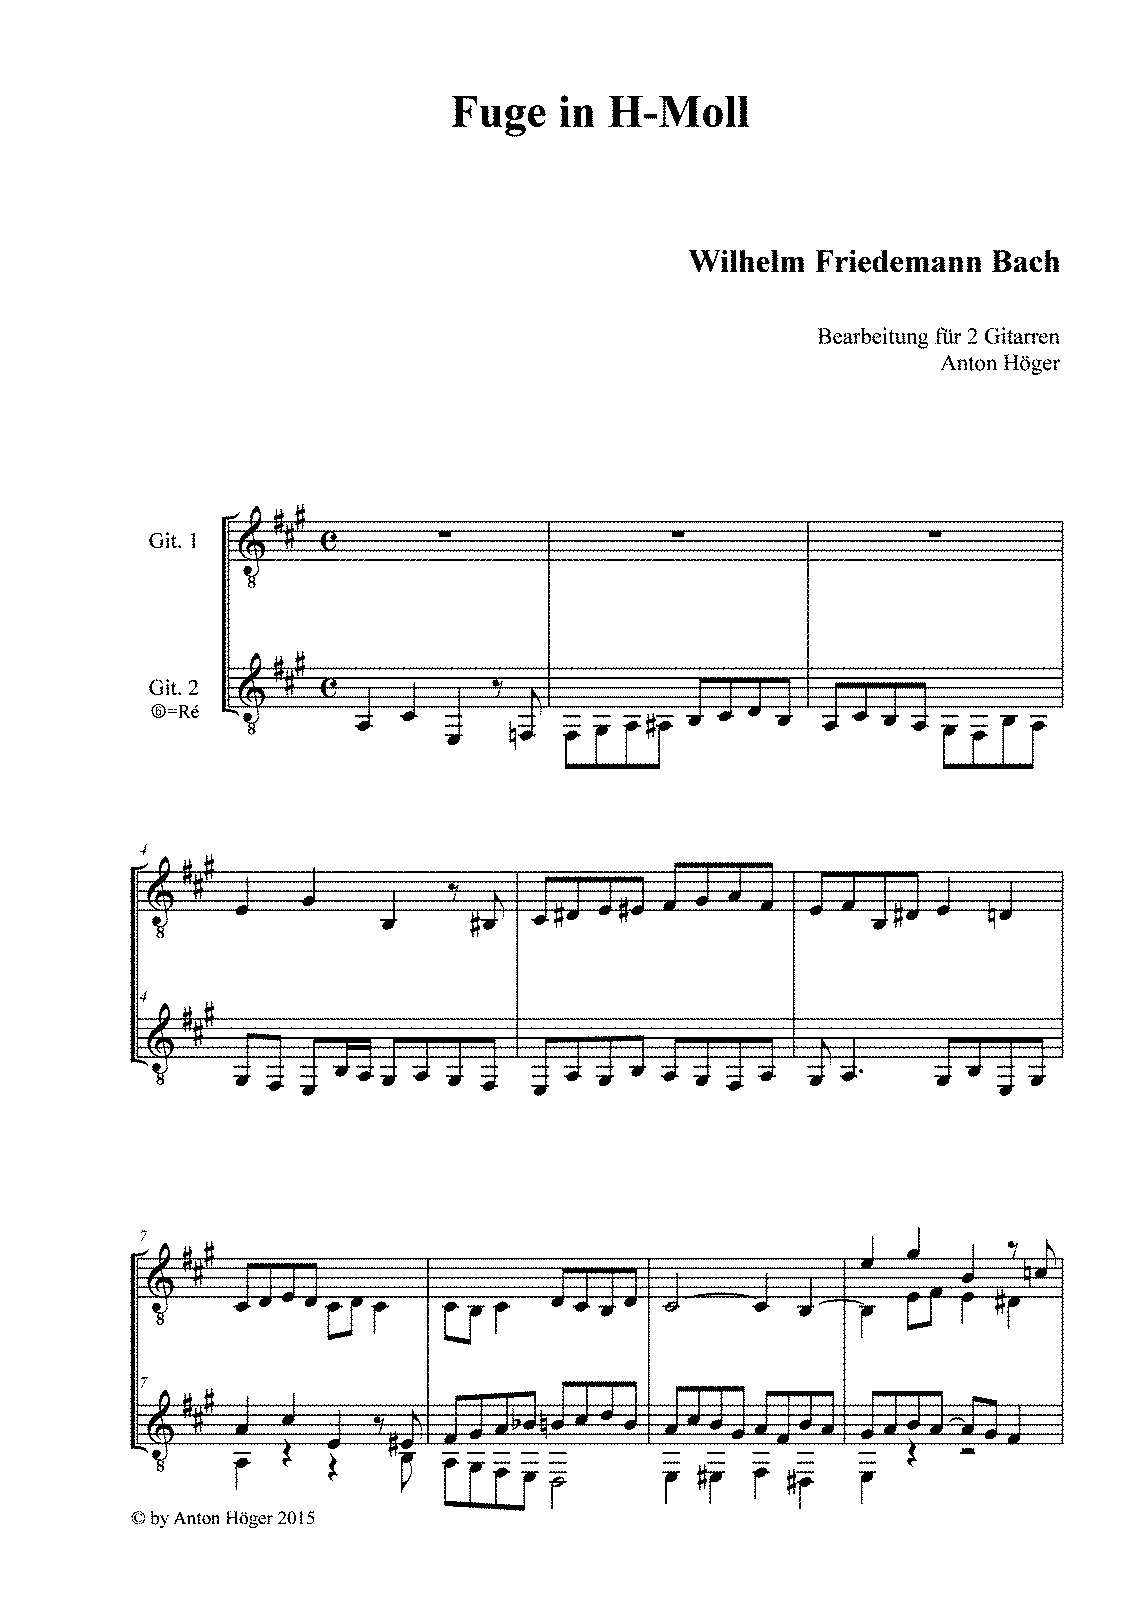 PMLP586627-Wilhelm Friedemann Bach - Fugue in B minor.pdf